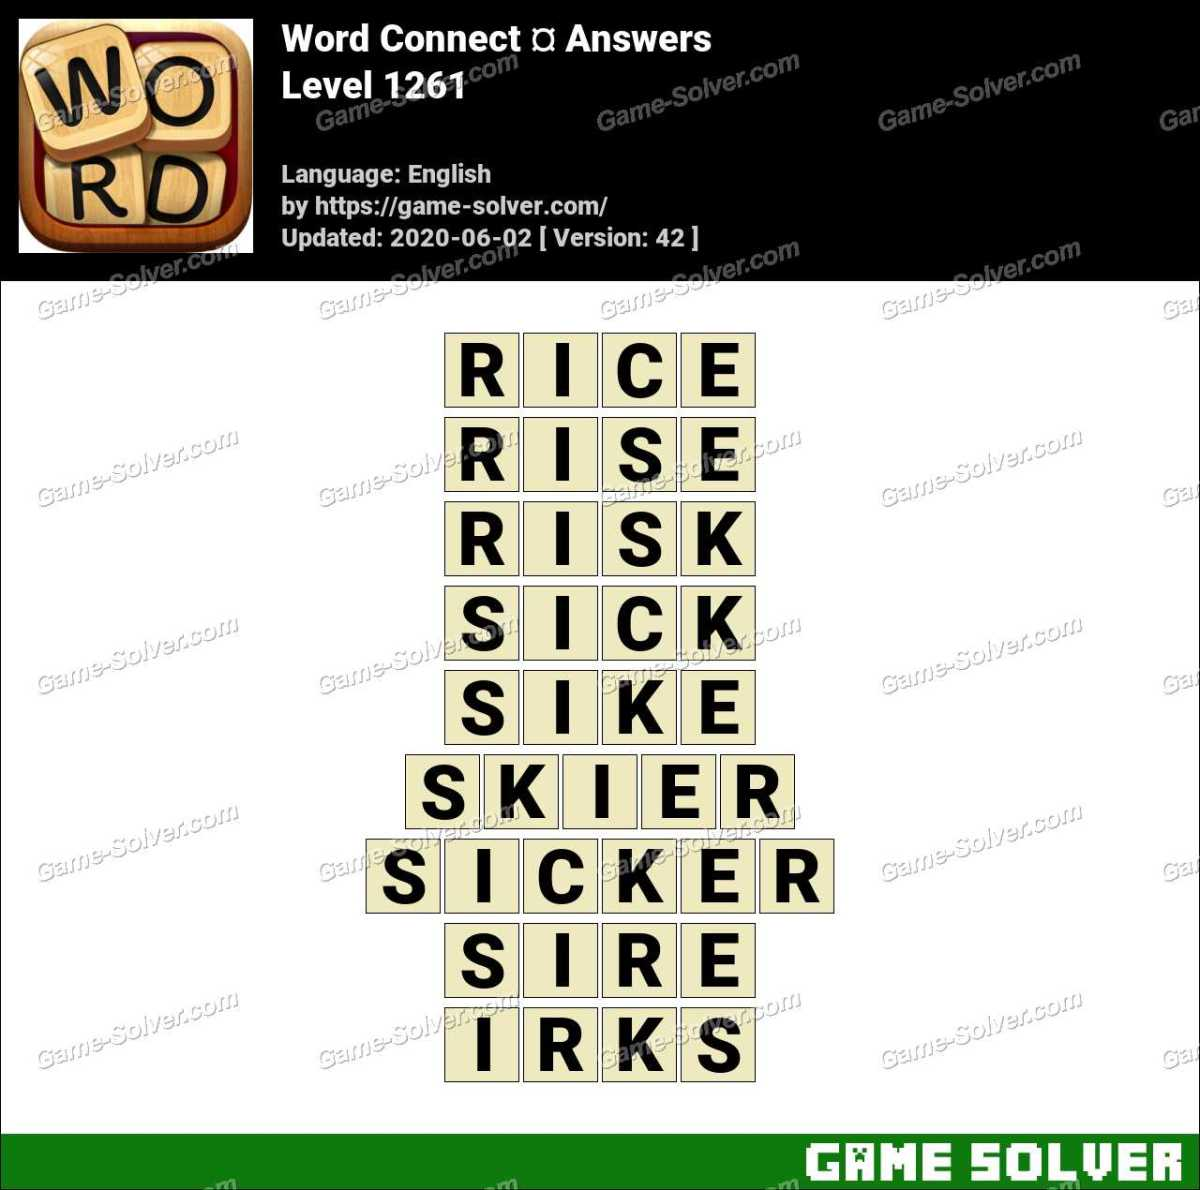 Word Connect Level 1261 Answers